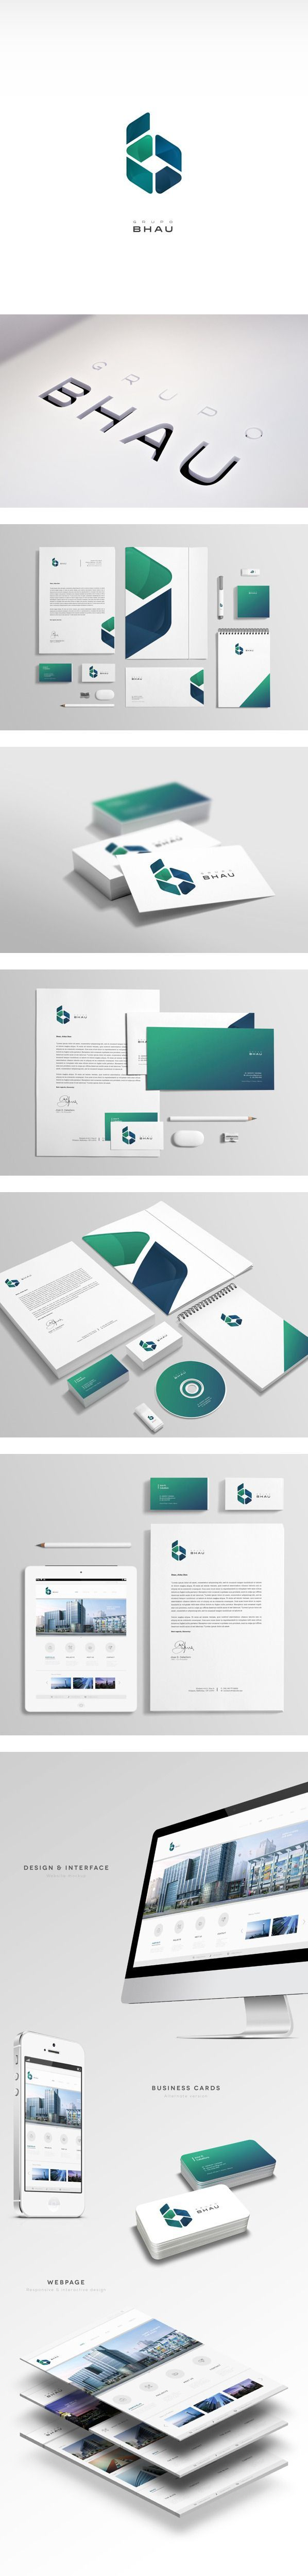 Grupo BHAU by Diego Leyva, via Behance. If you like UX, design, or design thinking, check out theuxblog.com podcast https://itunes.apple.com/us/podcast/ux-blog-user-experience-design/id1127946001?mt=2